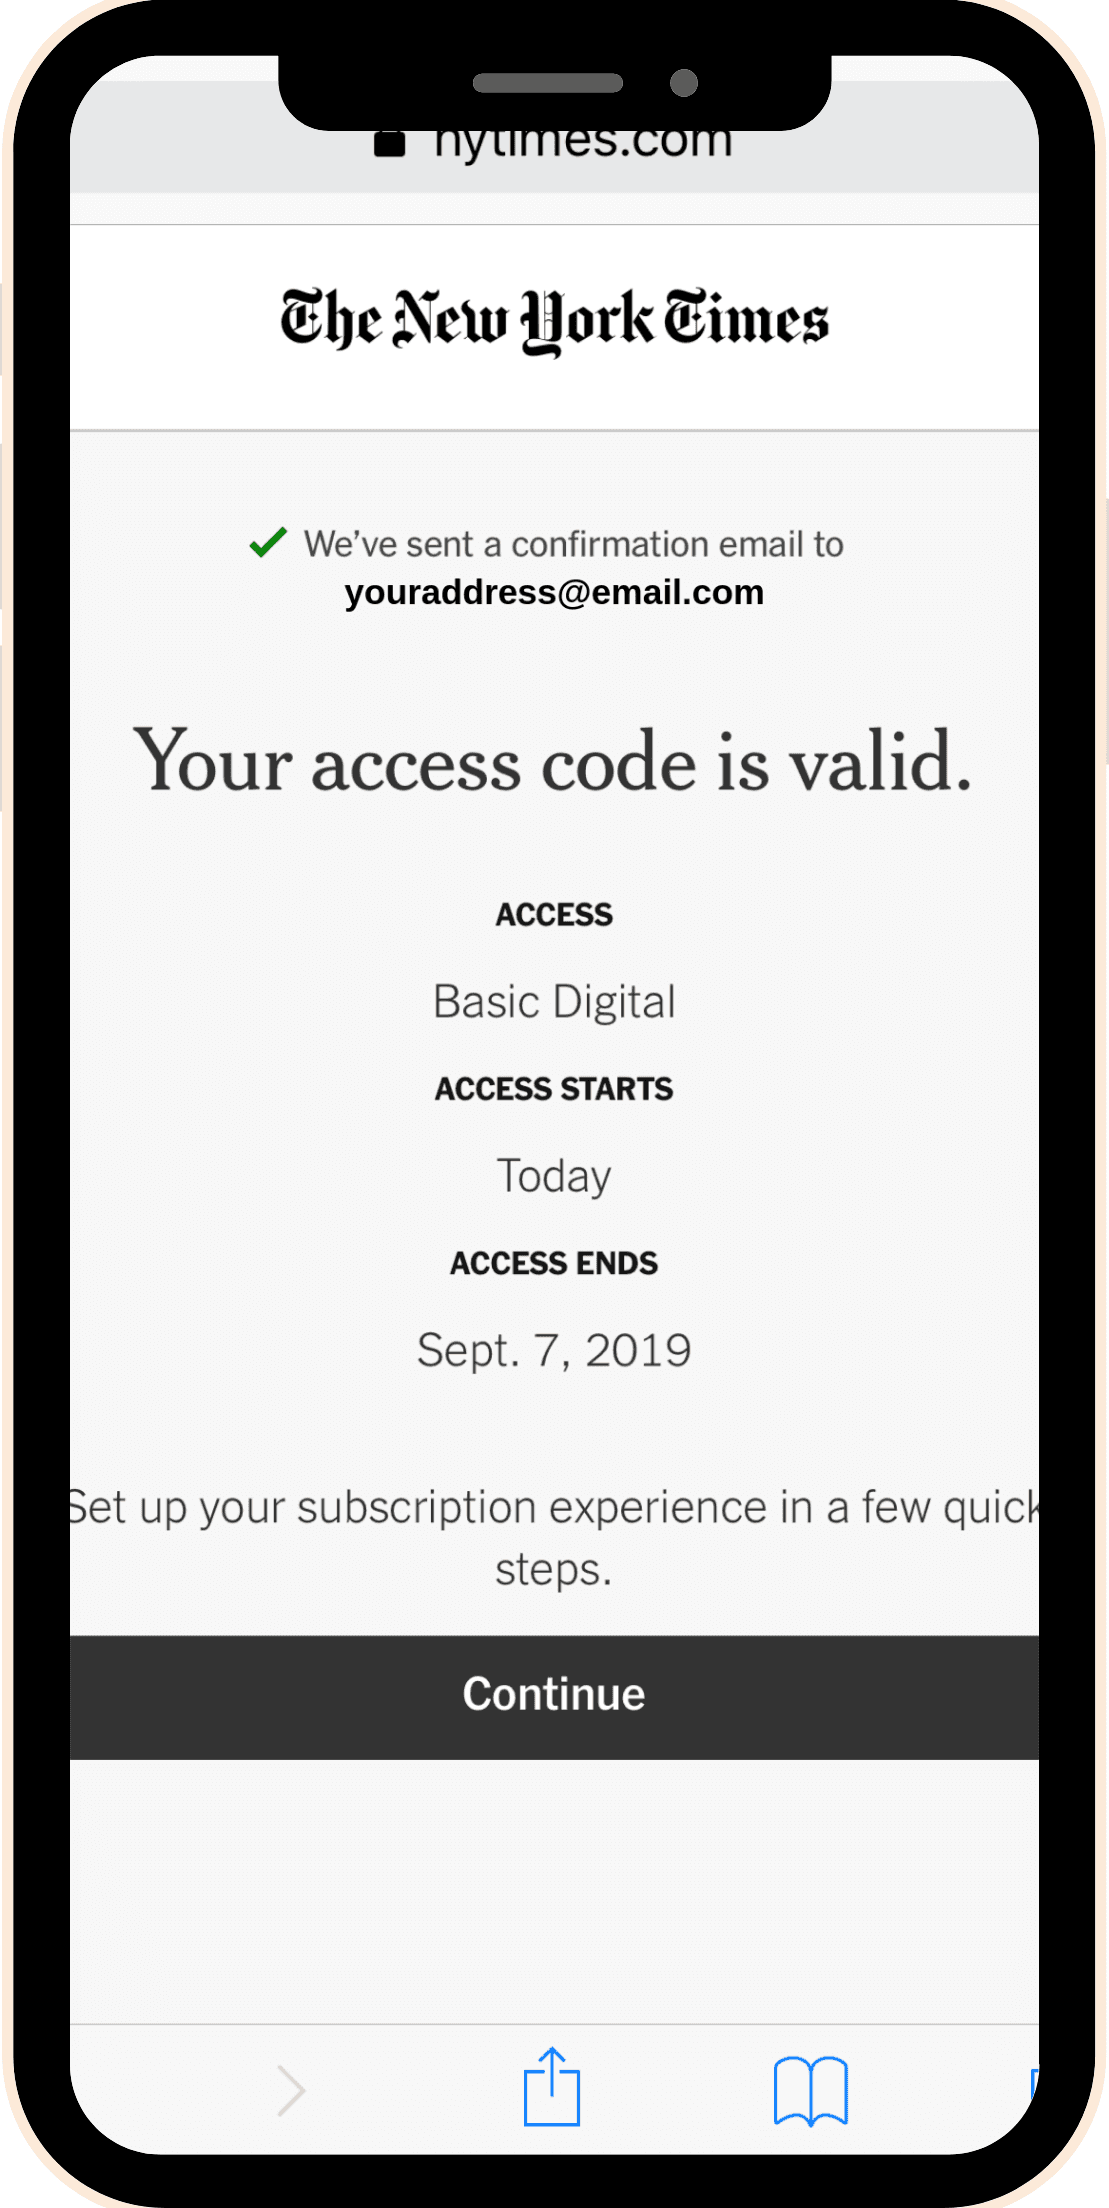 image of New York times access code notification webpage